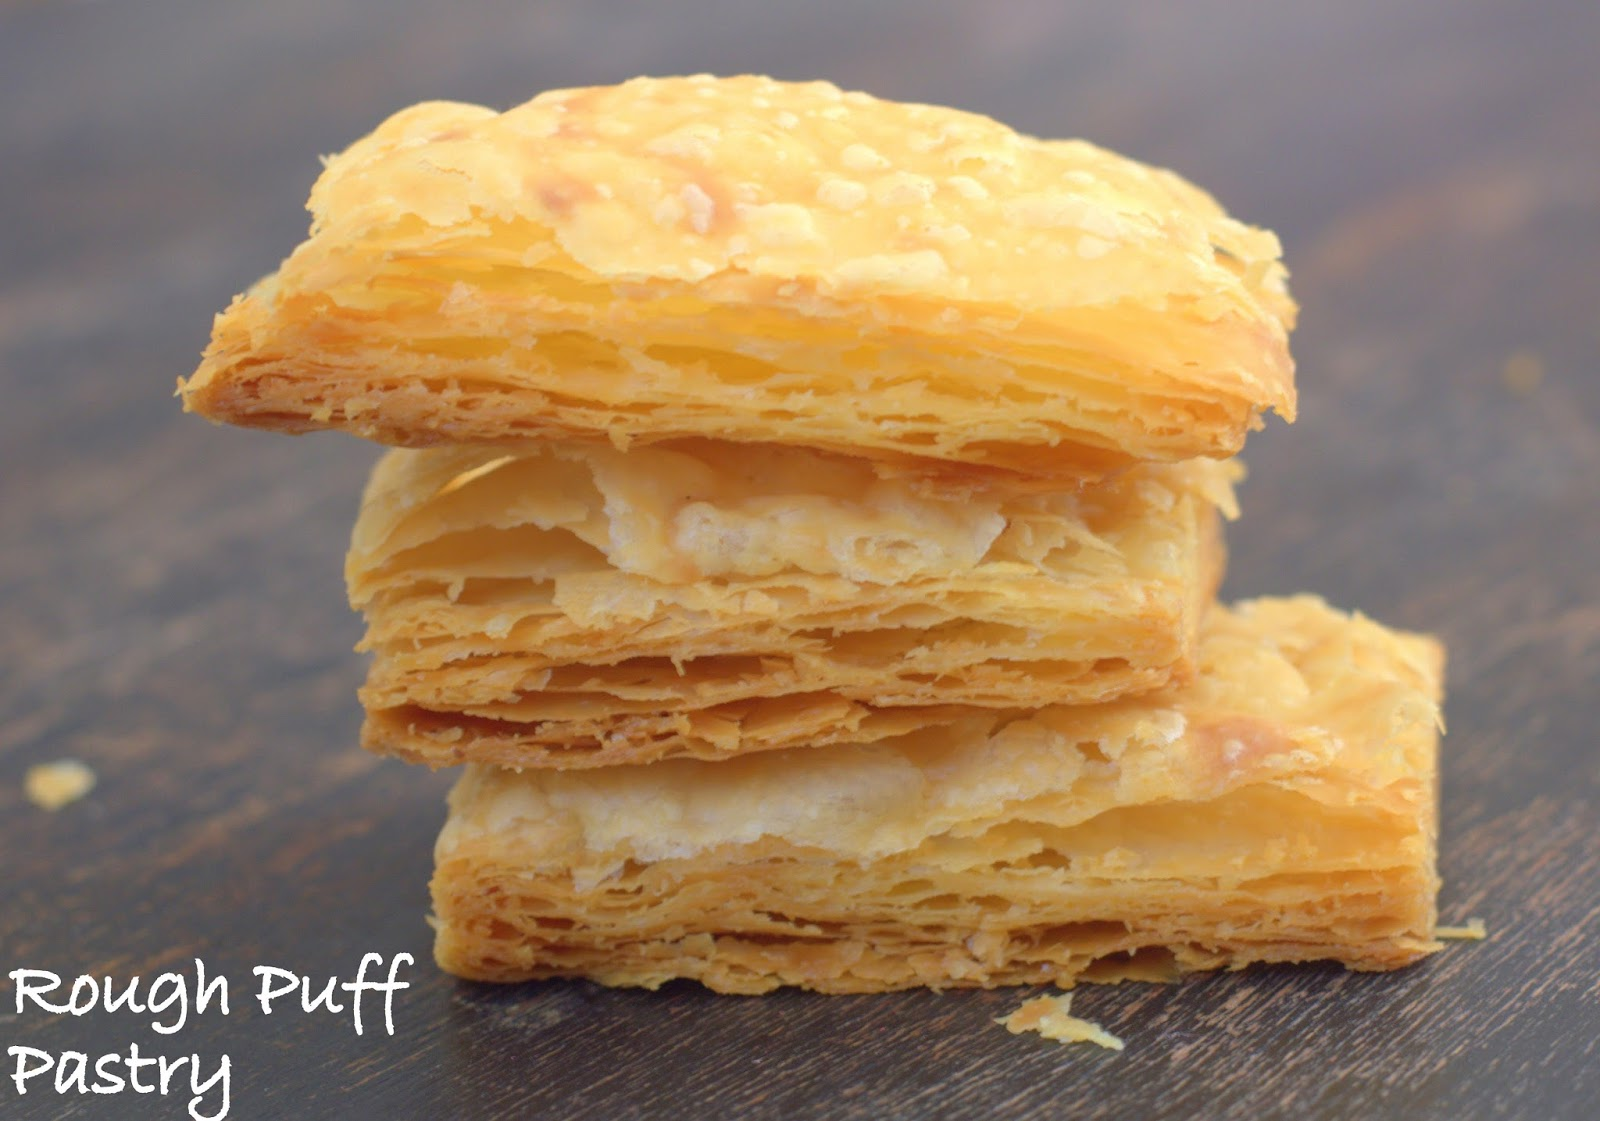 kitchen and home ideas with The Easiest Rough Puff Pastry For on Updating Sliding Closet Doors besides 71 further solent Kitchen Design co together with British Love Food Fortnight together with Modern Urban Dwelling By White Interior Design.